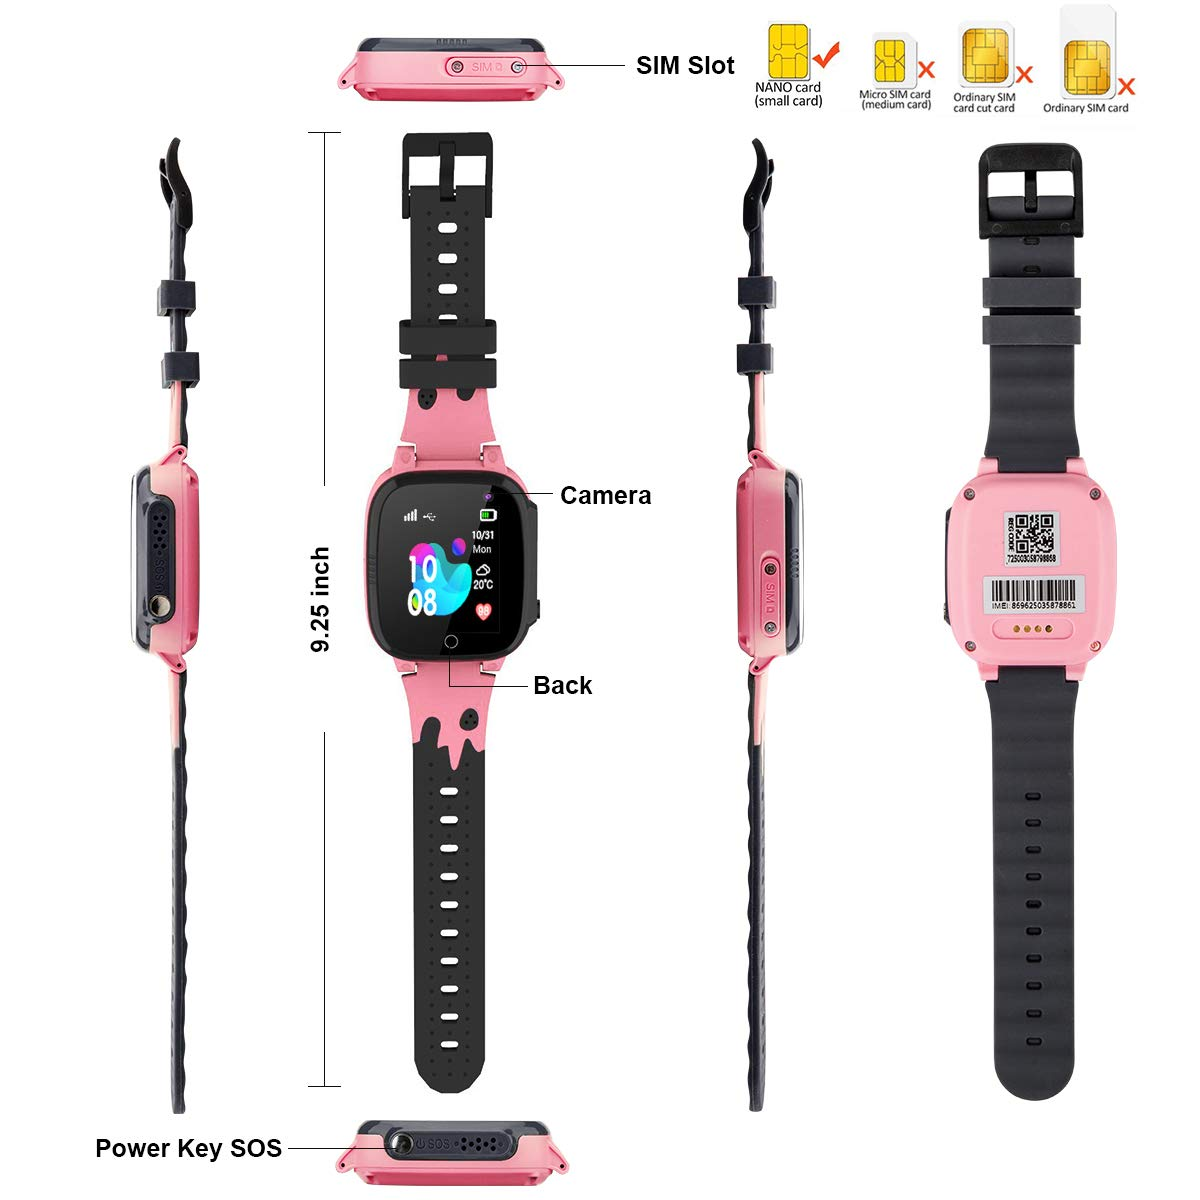 Kids Smart Watch Phone Waterproof with GPS Tracker SOS Anti-Lost Watch Touch Screen Camera Smart Watch for 3-12 Years Old Boys Girls (Pink) by SUNNY1 (Image #7)